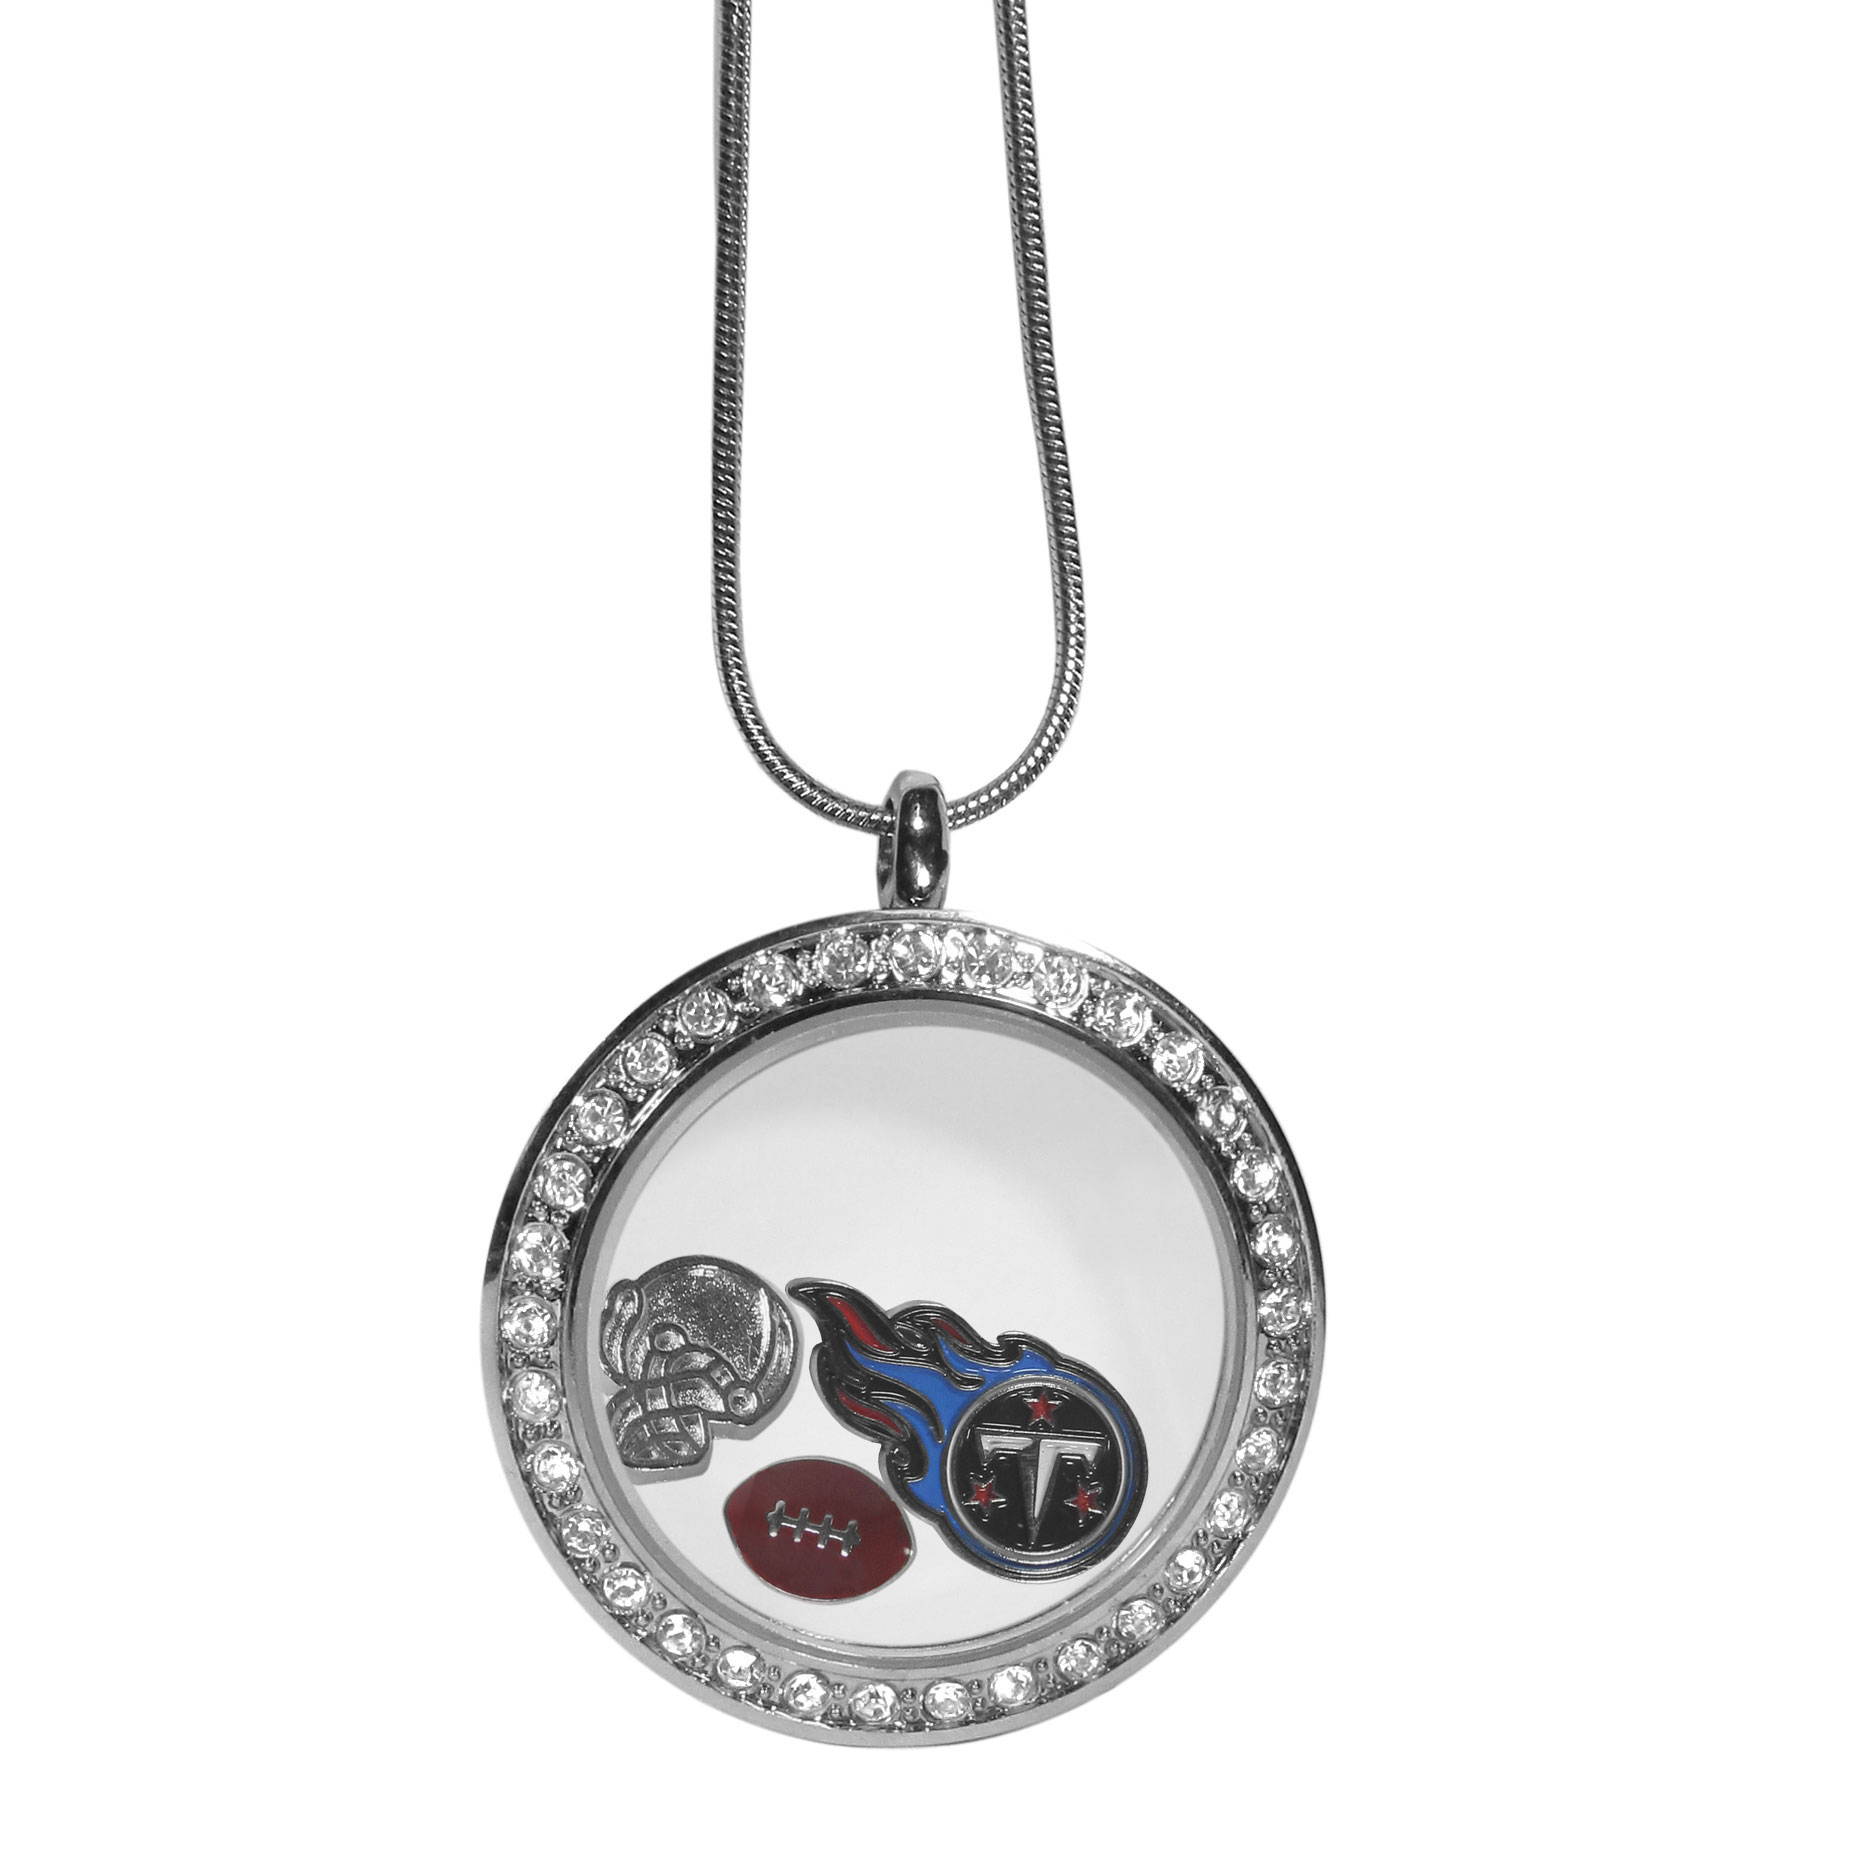 Tennessee Titans Locket Necklace - We have taken the classic floating charm locket and combined with licensed sports charms to create a must have fan necklace. The necklace comes with 3 charms; 1 Tennessee Titans charm, one football charm and one helmet charm. The charms float in a beautiful locket that has a strong magnetic closure with a rhinestone border. The locket comes on an 18 inch snake chain with 2 inch extender.